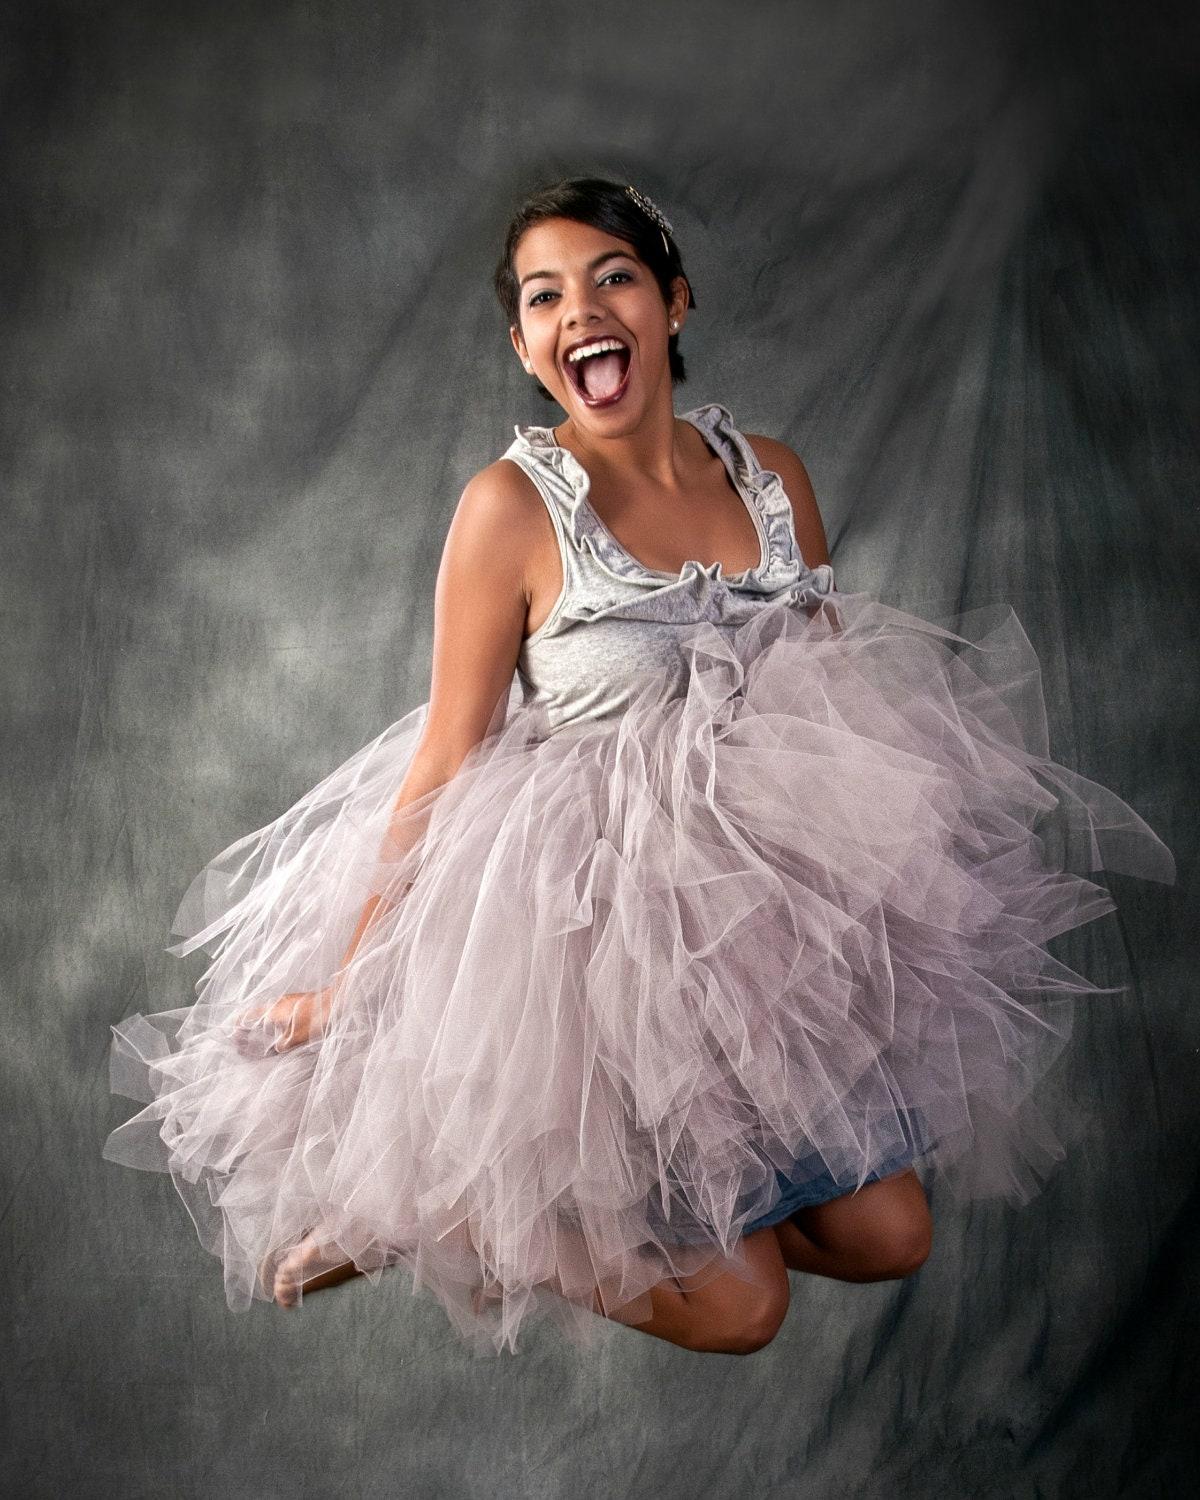 Tutus Tutu: Adult Tutu Skirt Grey Tutu Skirt Adult Formal Tutu. Custom